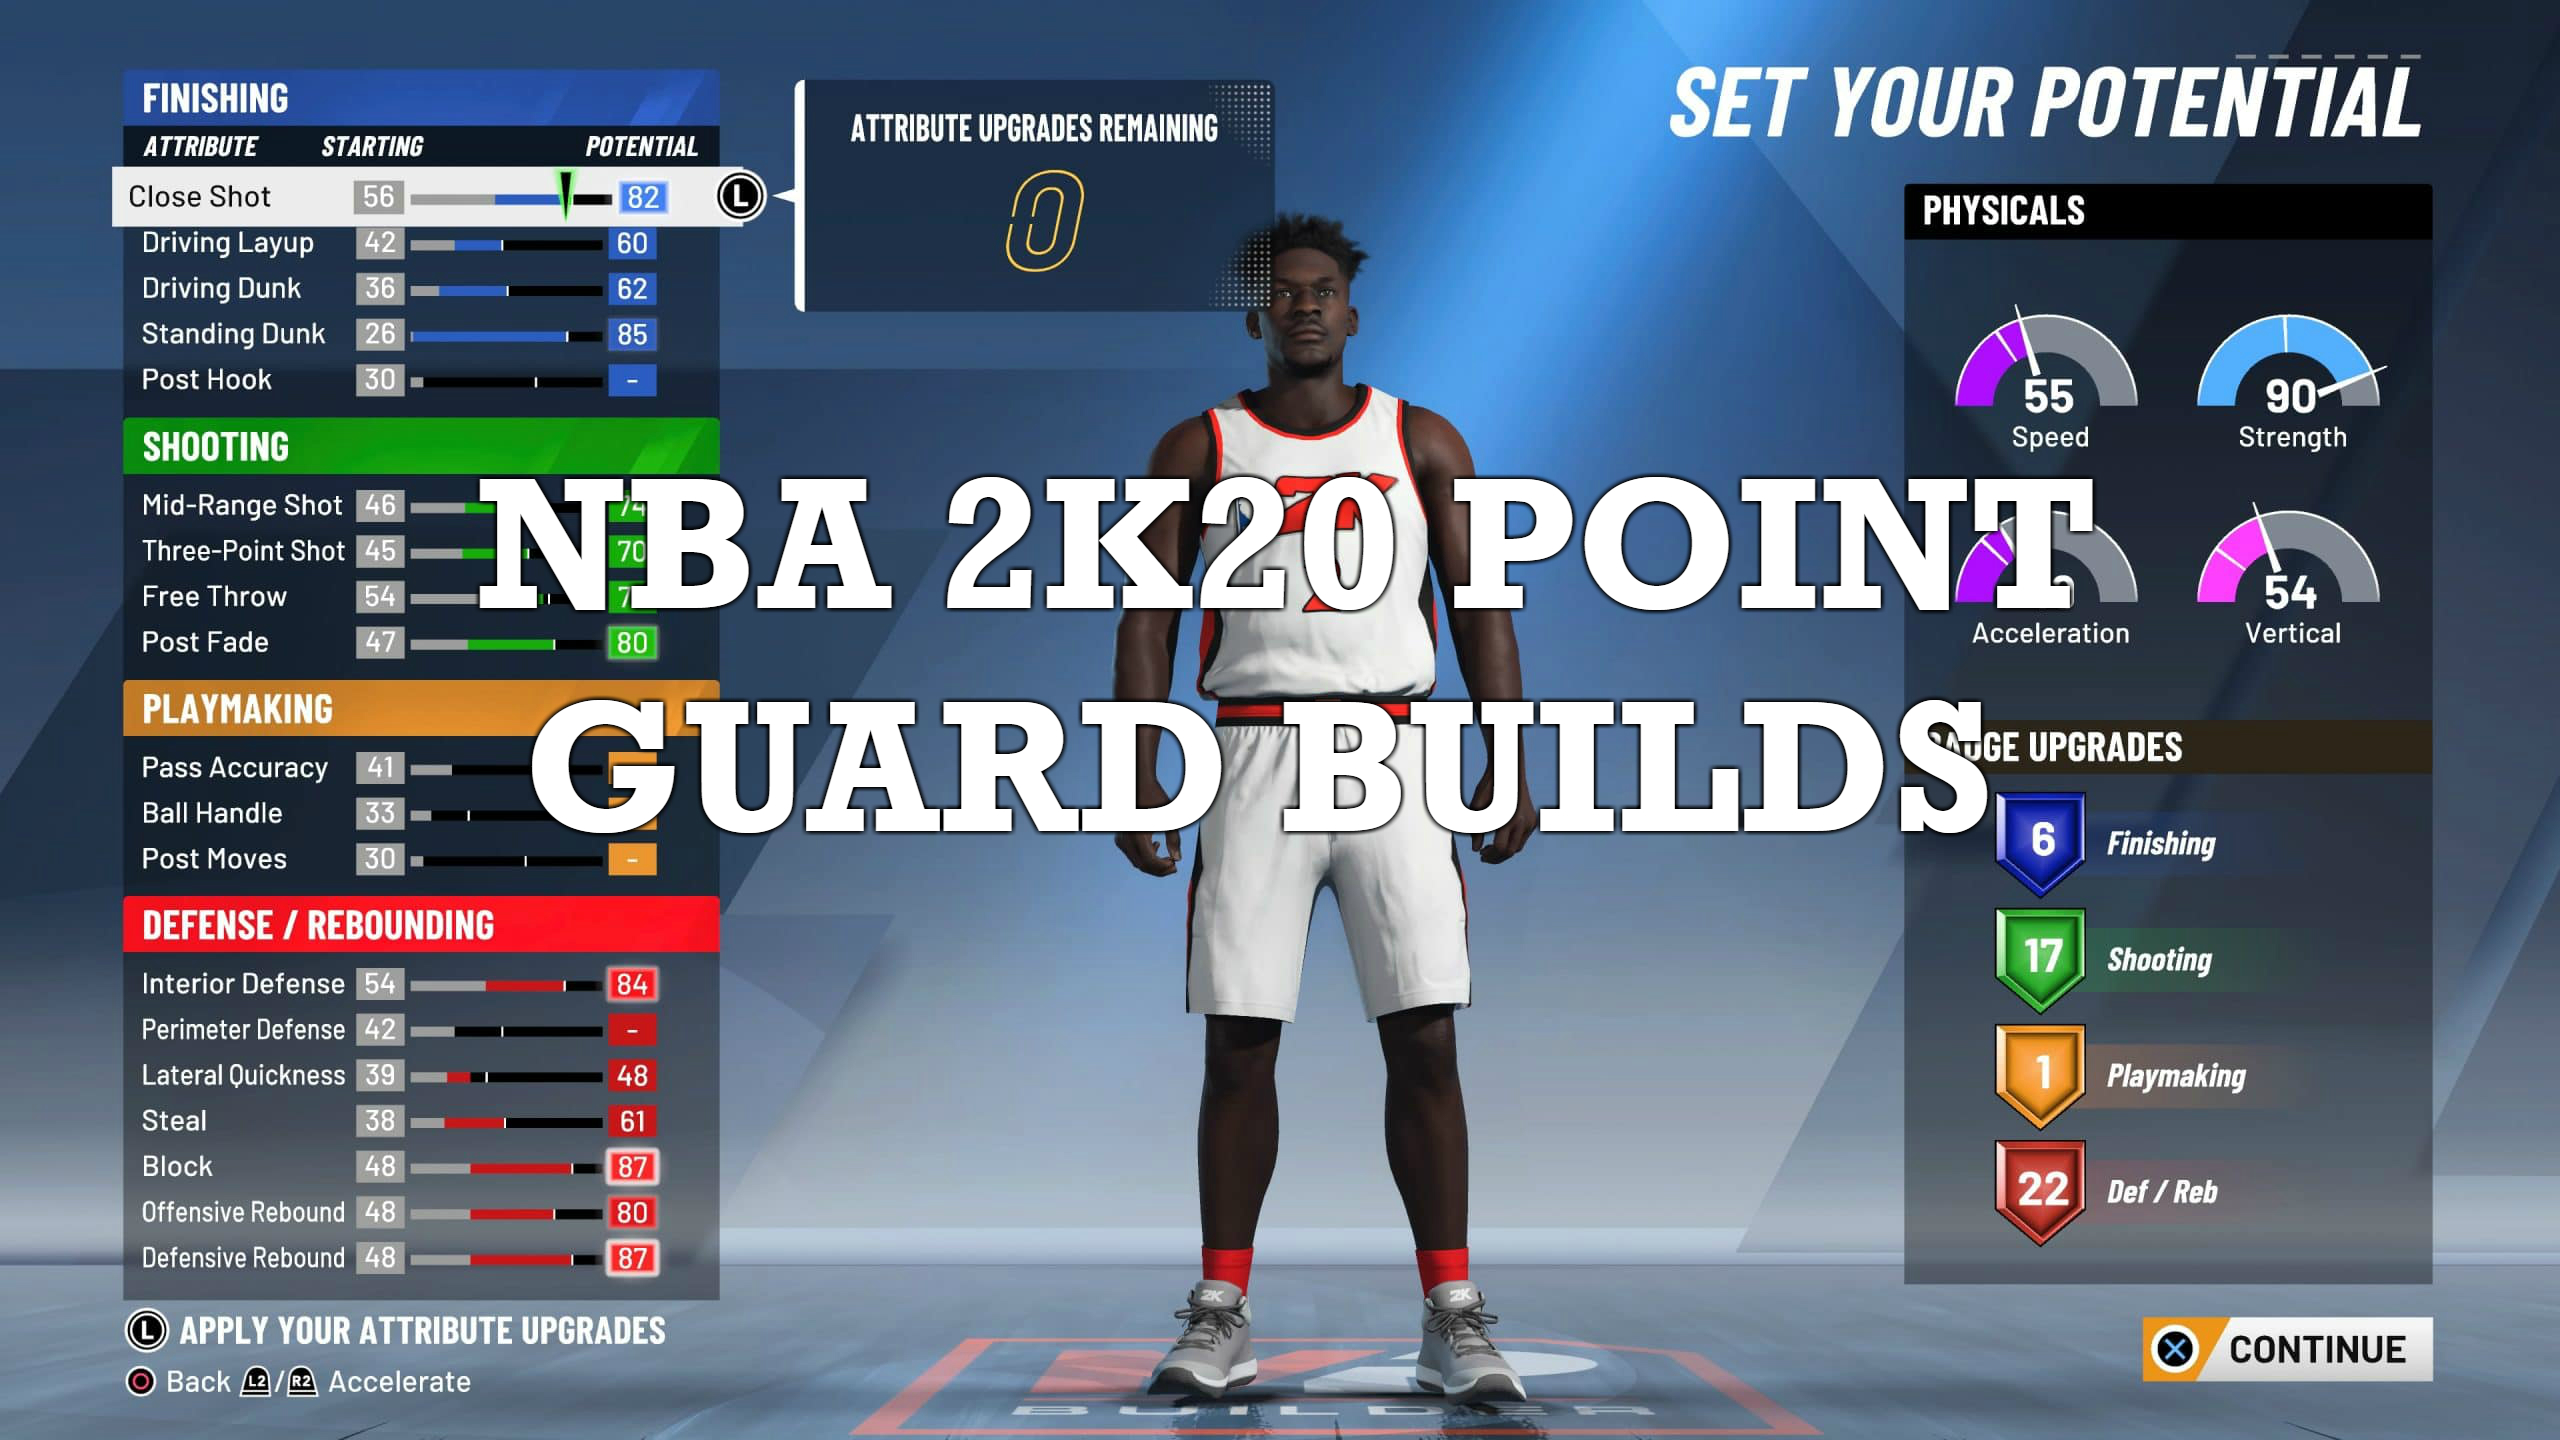 NBA-2K20 point guard build